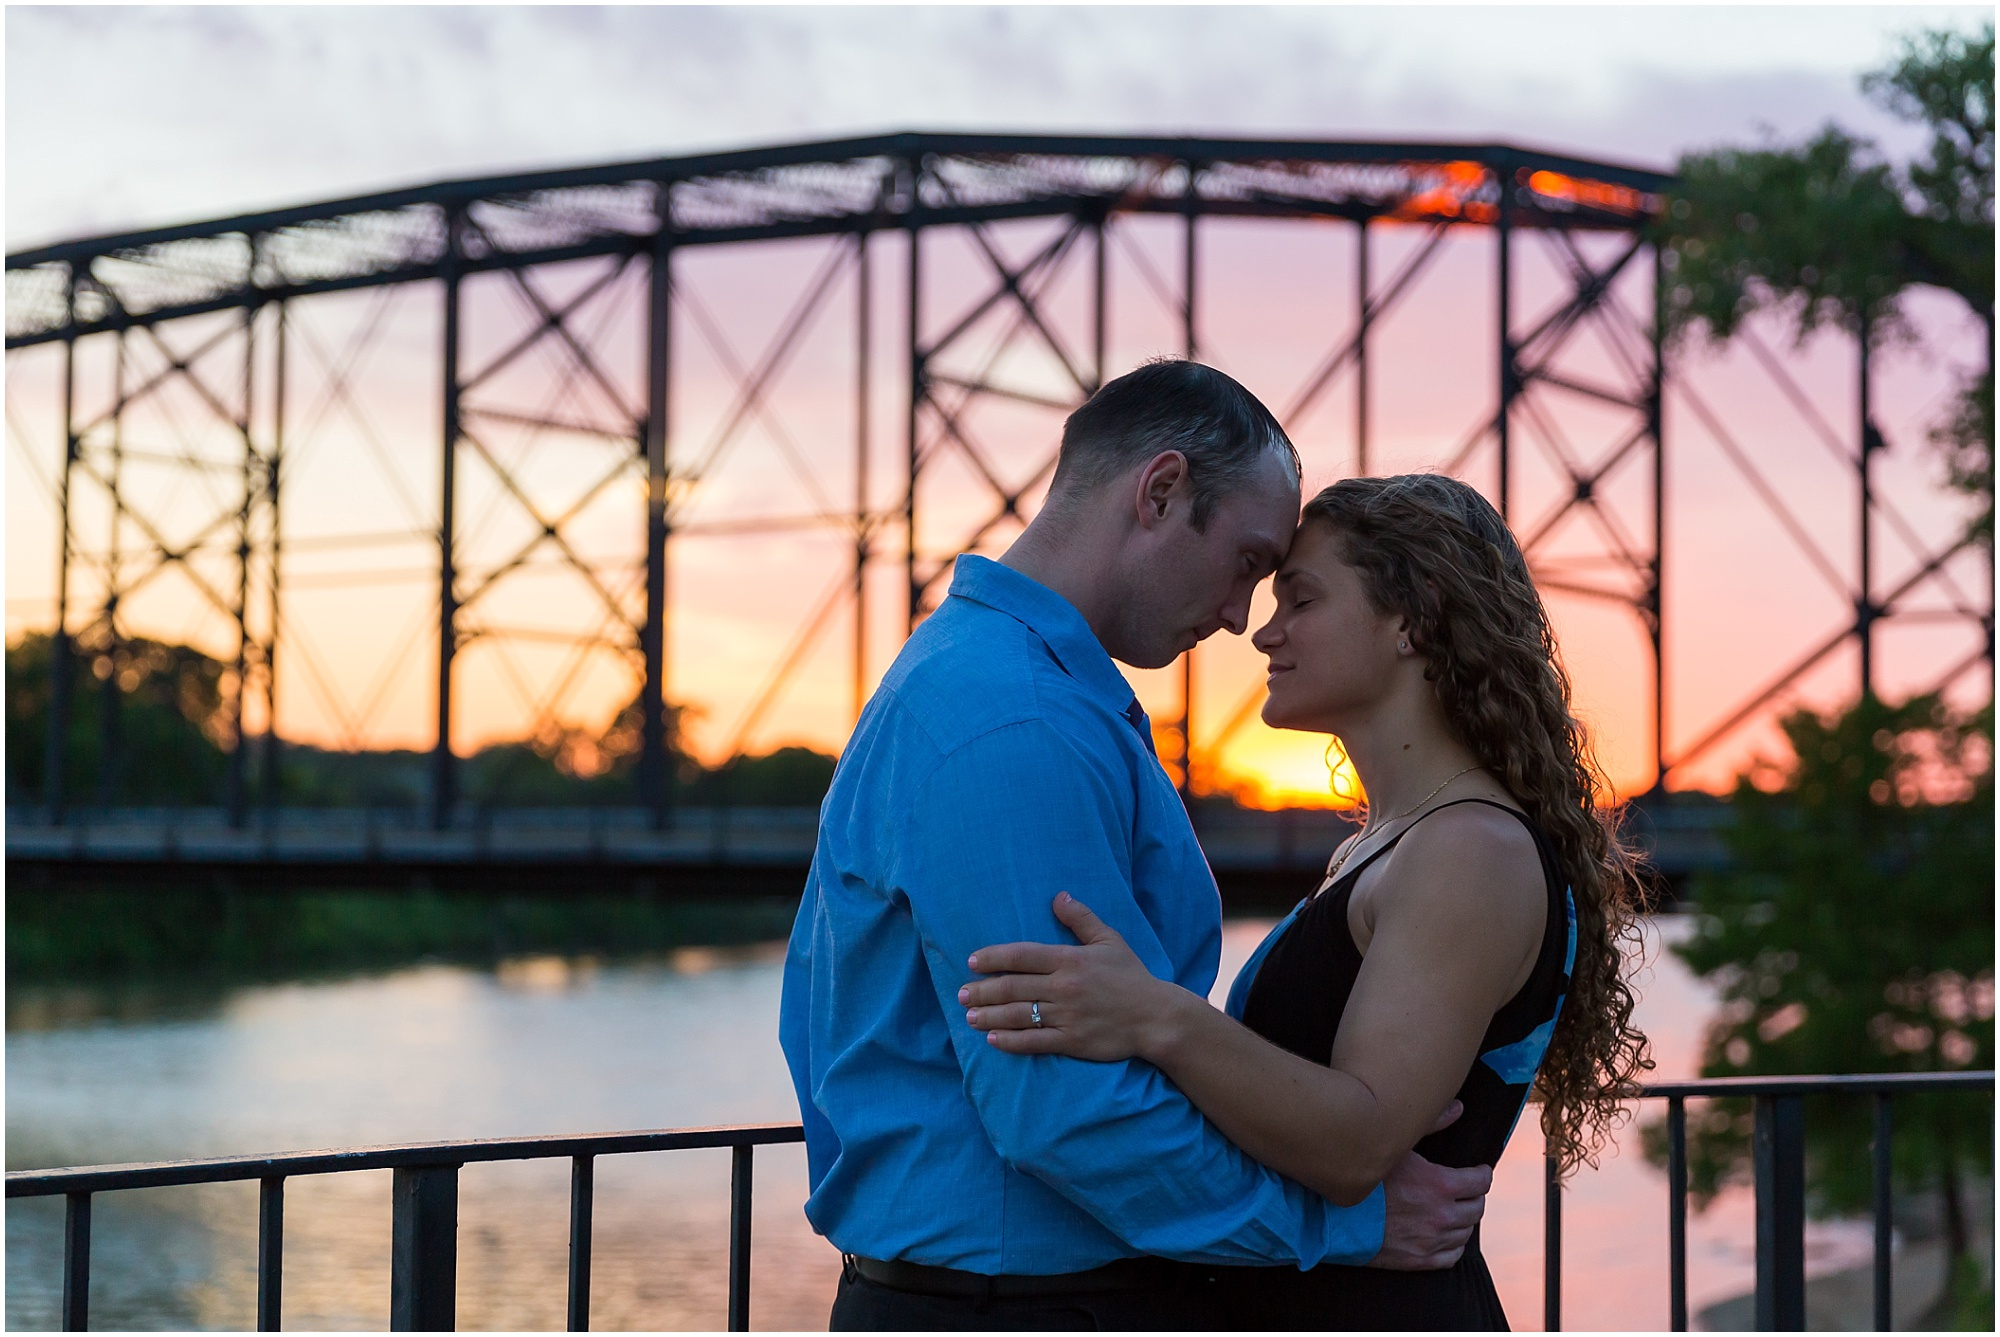 A couple puts their foreheads together with the sun setting behind them during their engagement photos near the Waco, Texas Suspension Bridge - Jason & Melaina Photography - www.jasonandmelaina.com